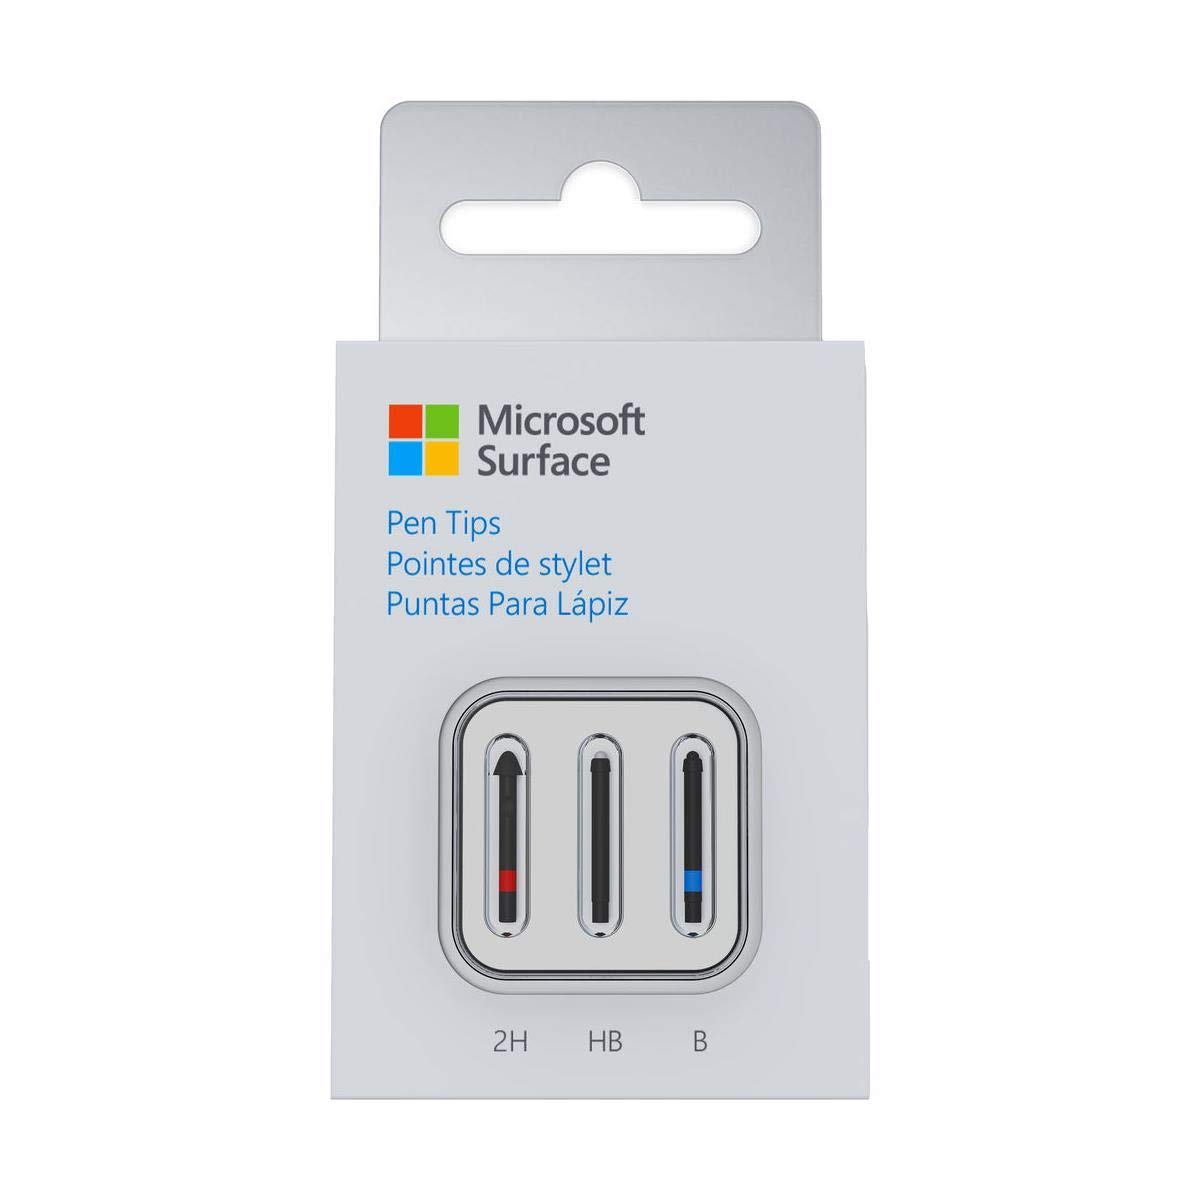 Microsoft Surface Pen Tips by Microsoft (Image #1)